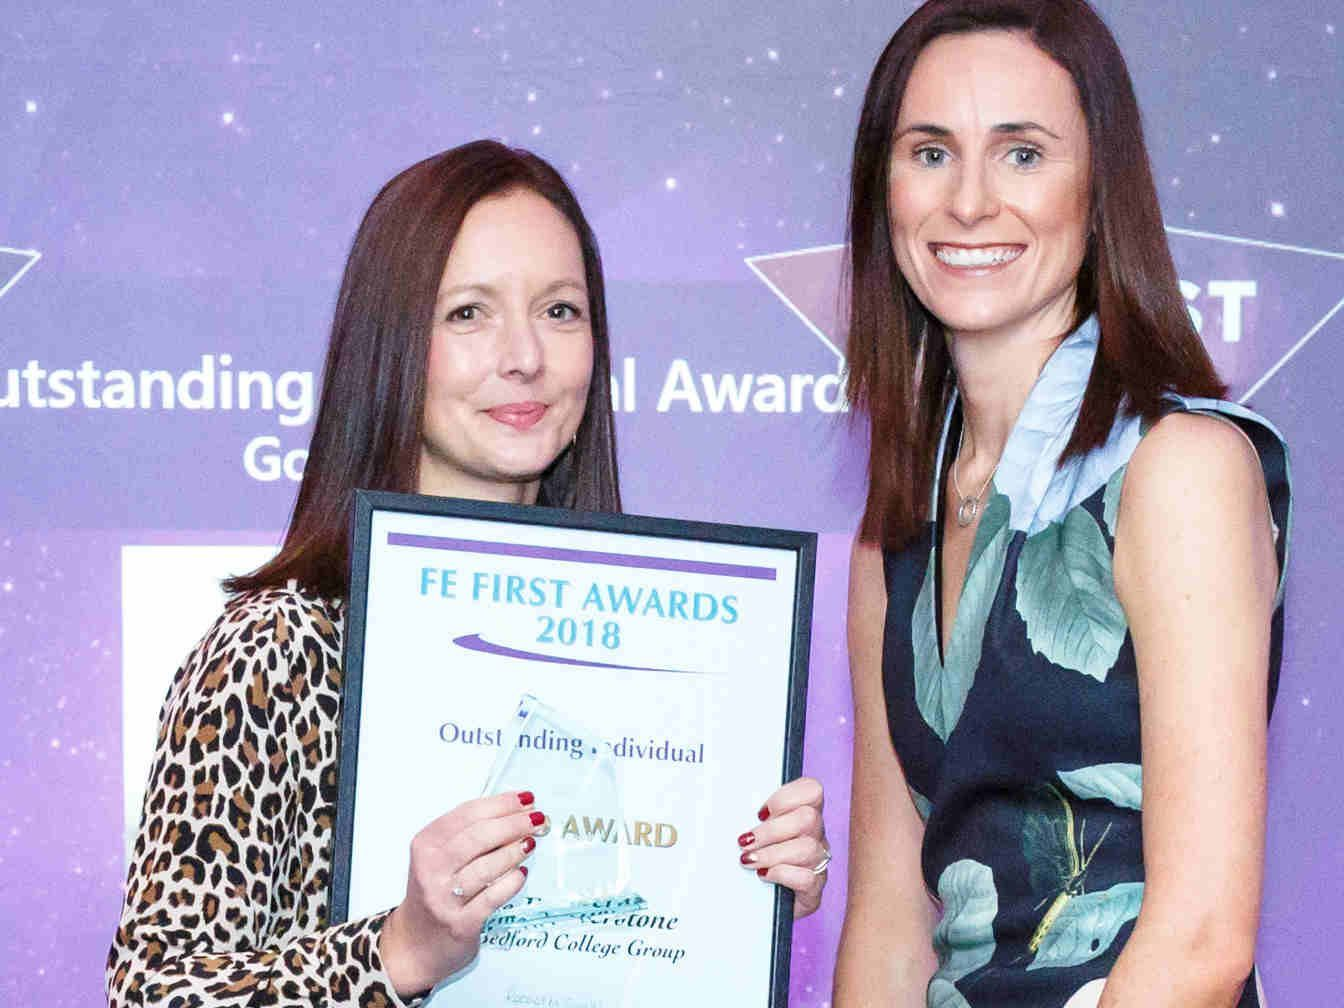 FE First Awards 2018, College Marketing Network, Katie Featherstone, Bedford College Group